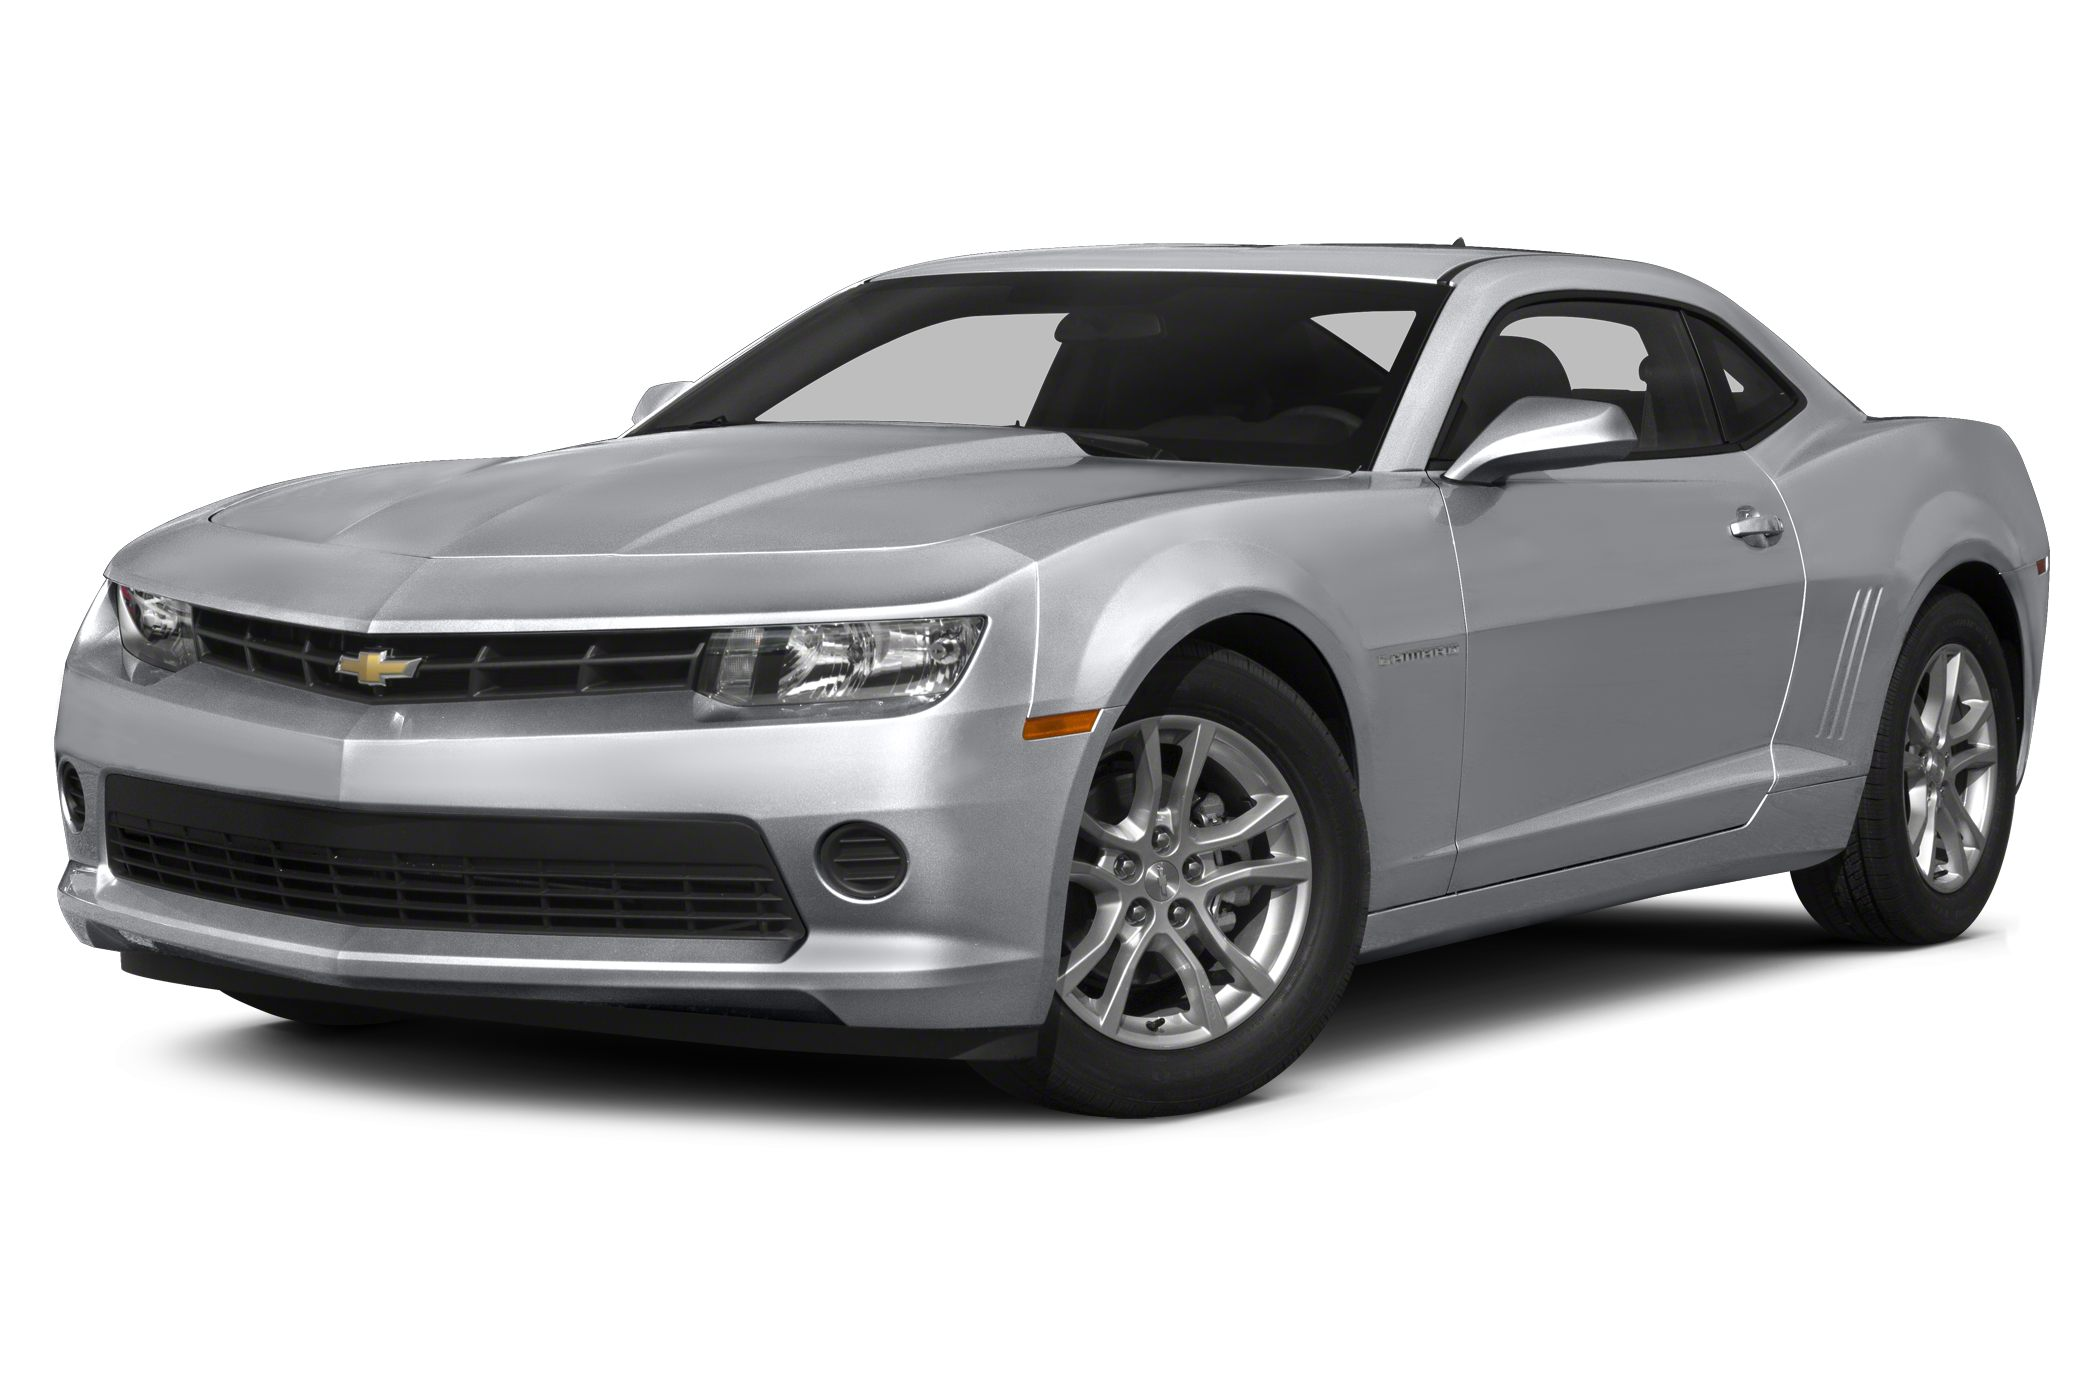 2015 Chevrolet Camaro 1LT Coupe for sale in Easley for $29,570 with 0 miles.